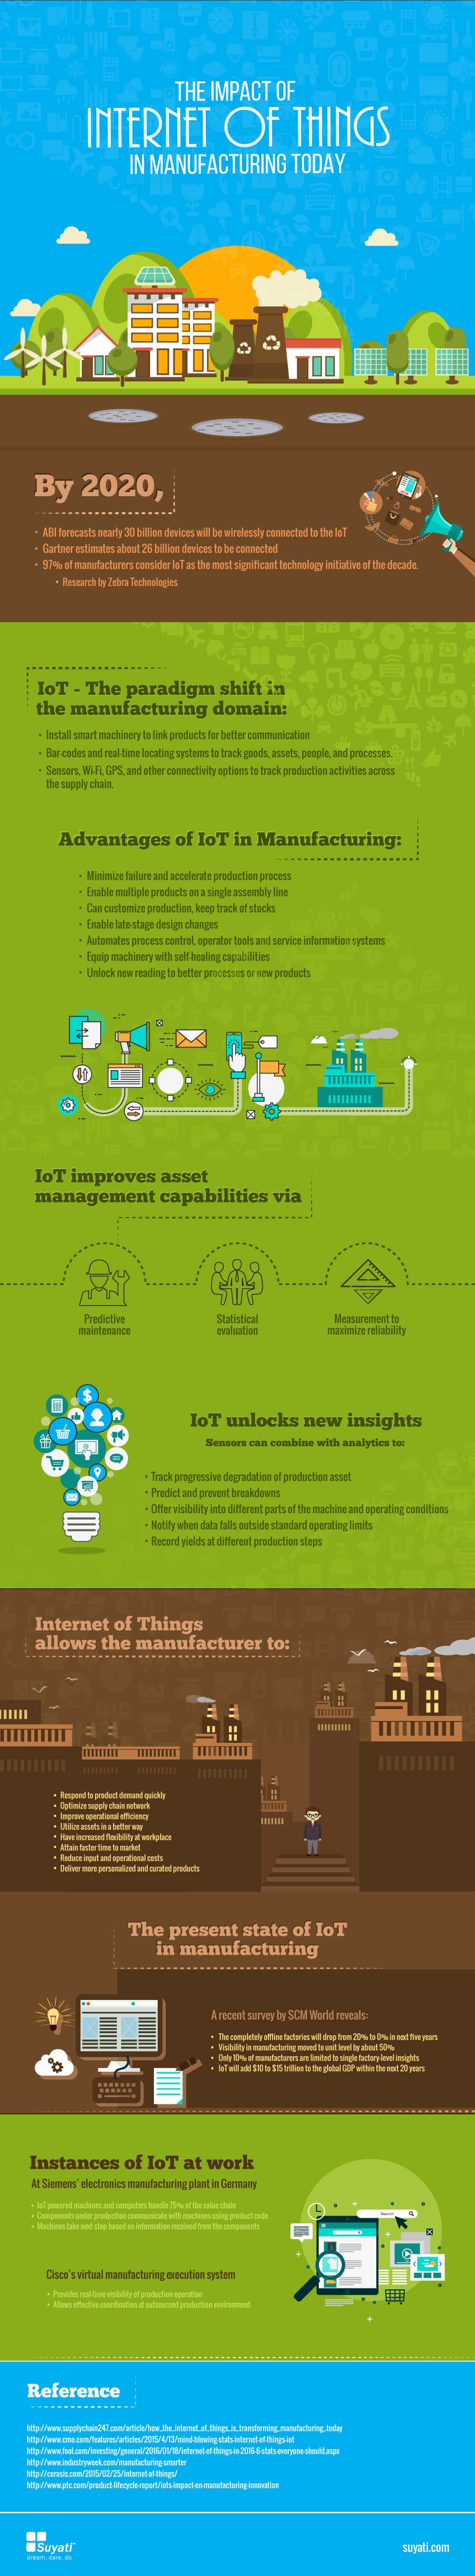 The Impact of Internet of Things (IoT) in Manufacturing